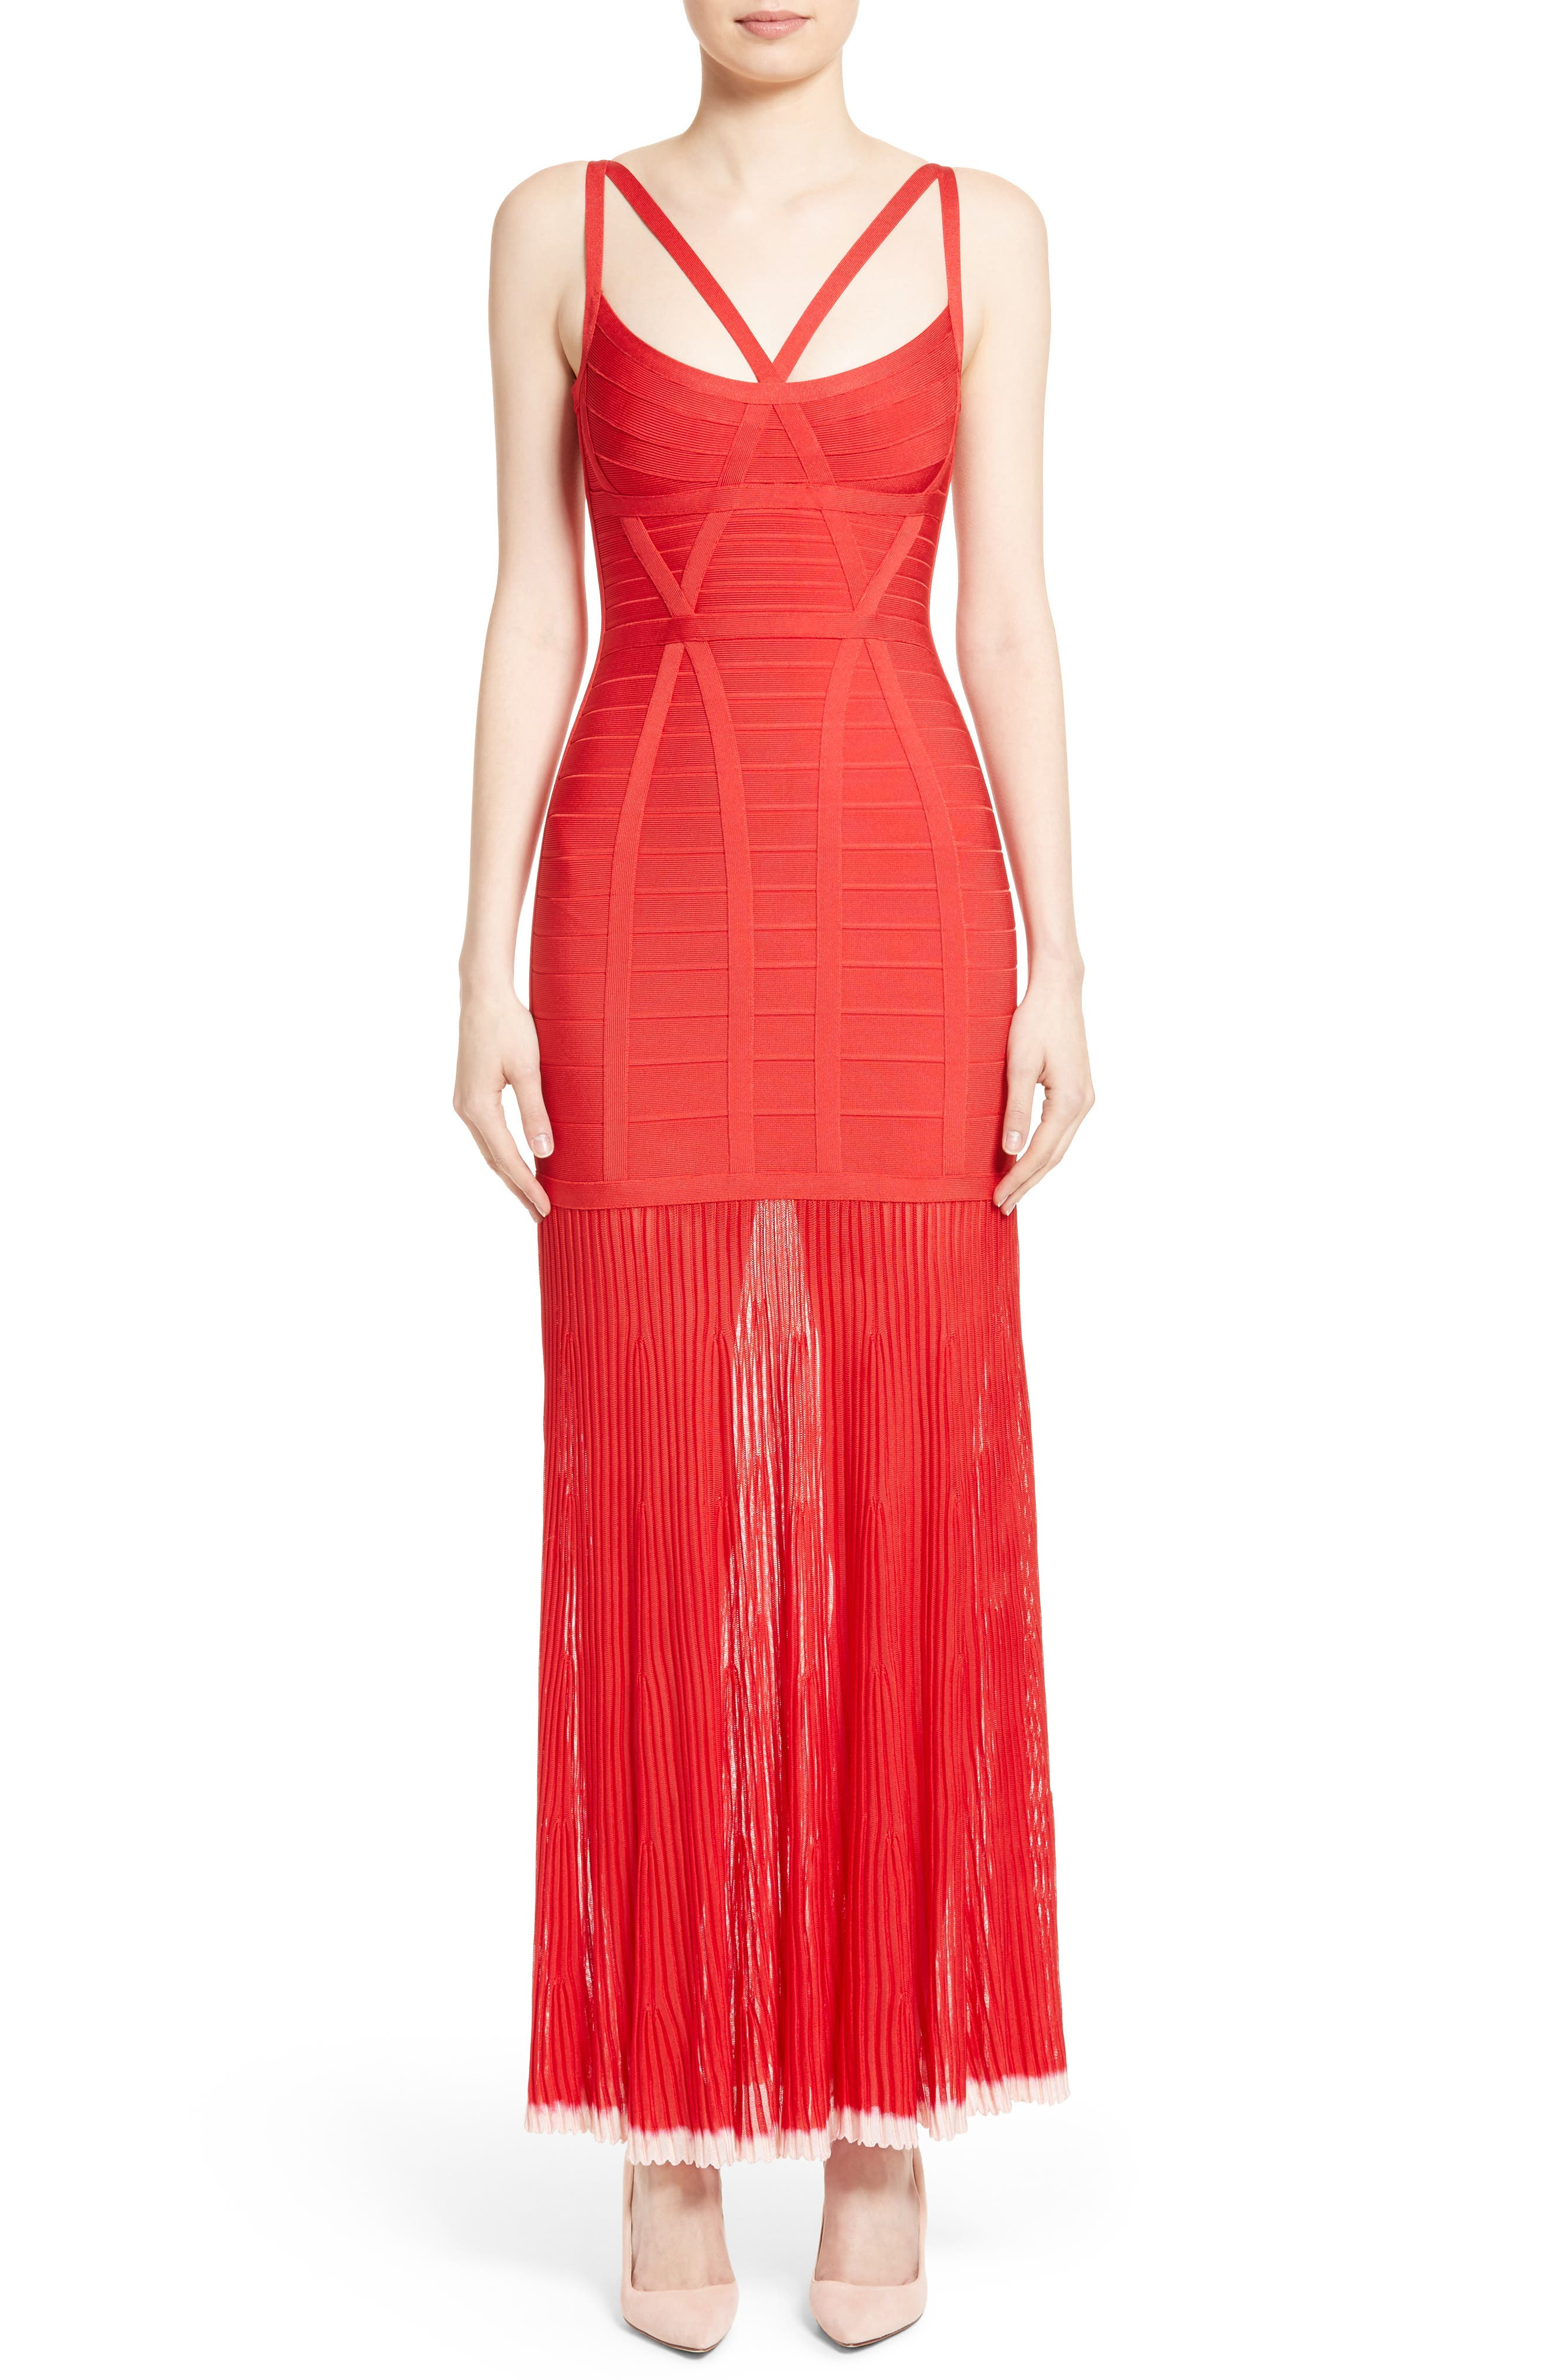 HERVE LEGER Ombré Tipped Bandage Gown